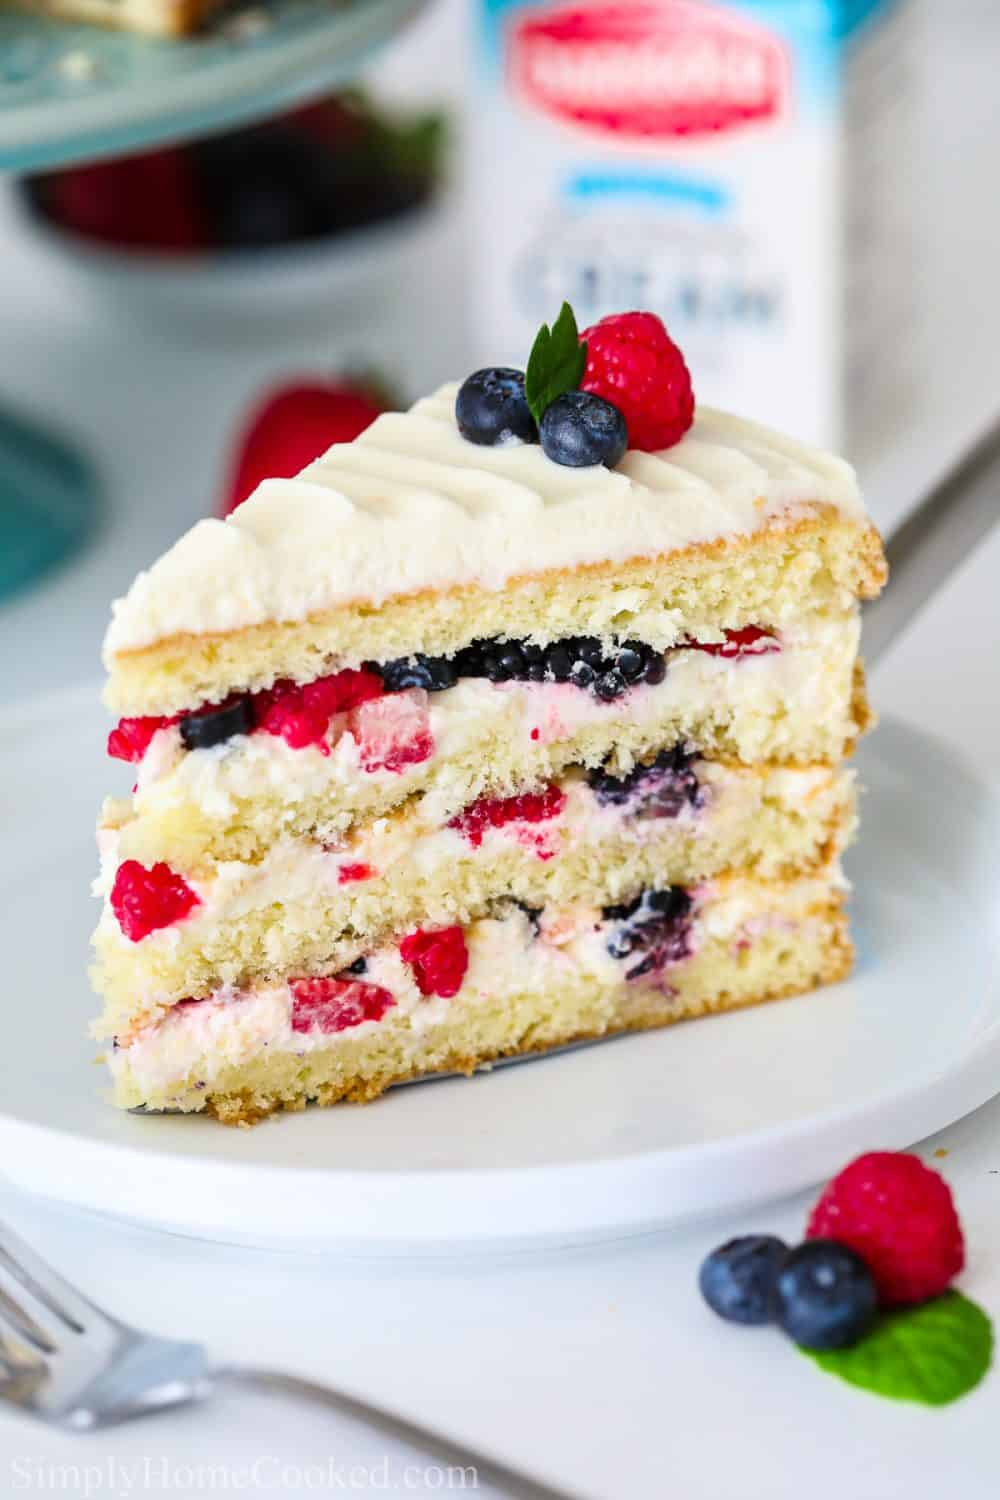 sliced Chantilly cake with berries on top on a white plate with a blue cake stand behind it